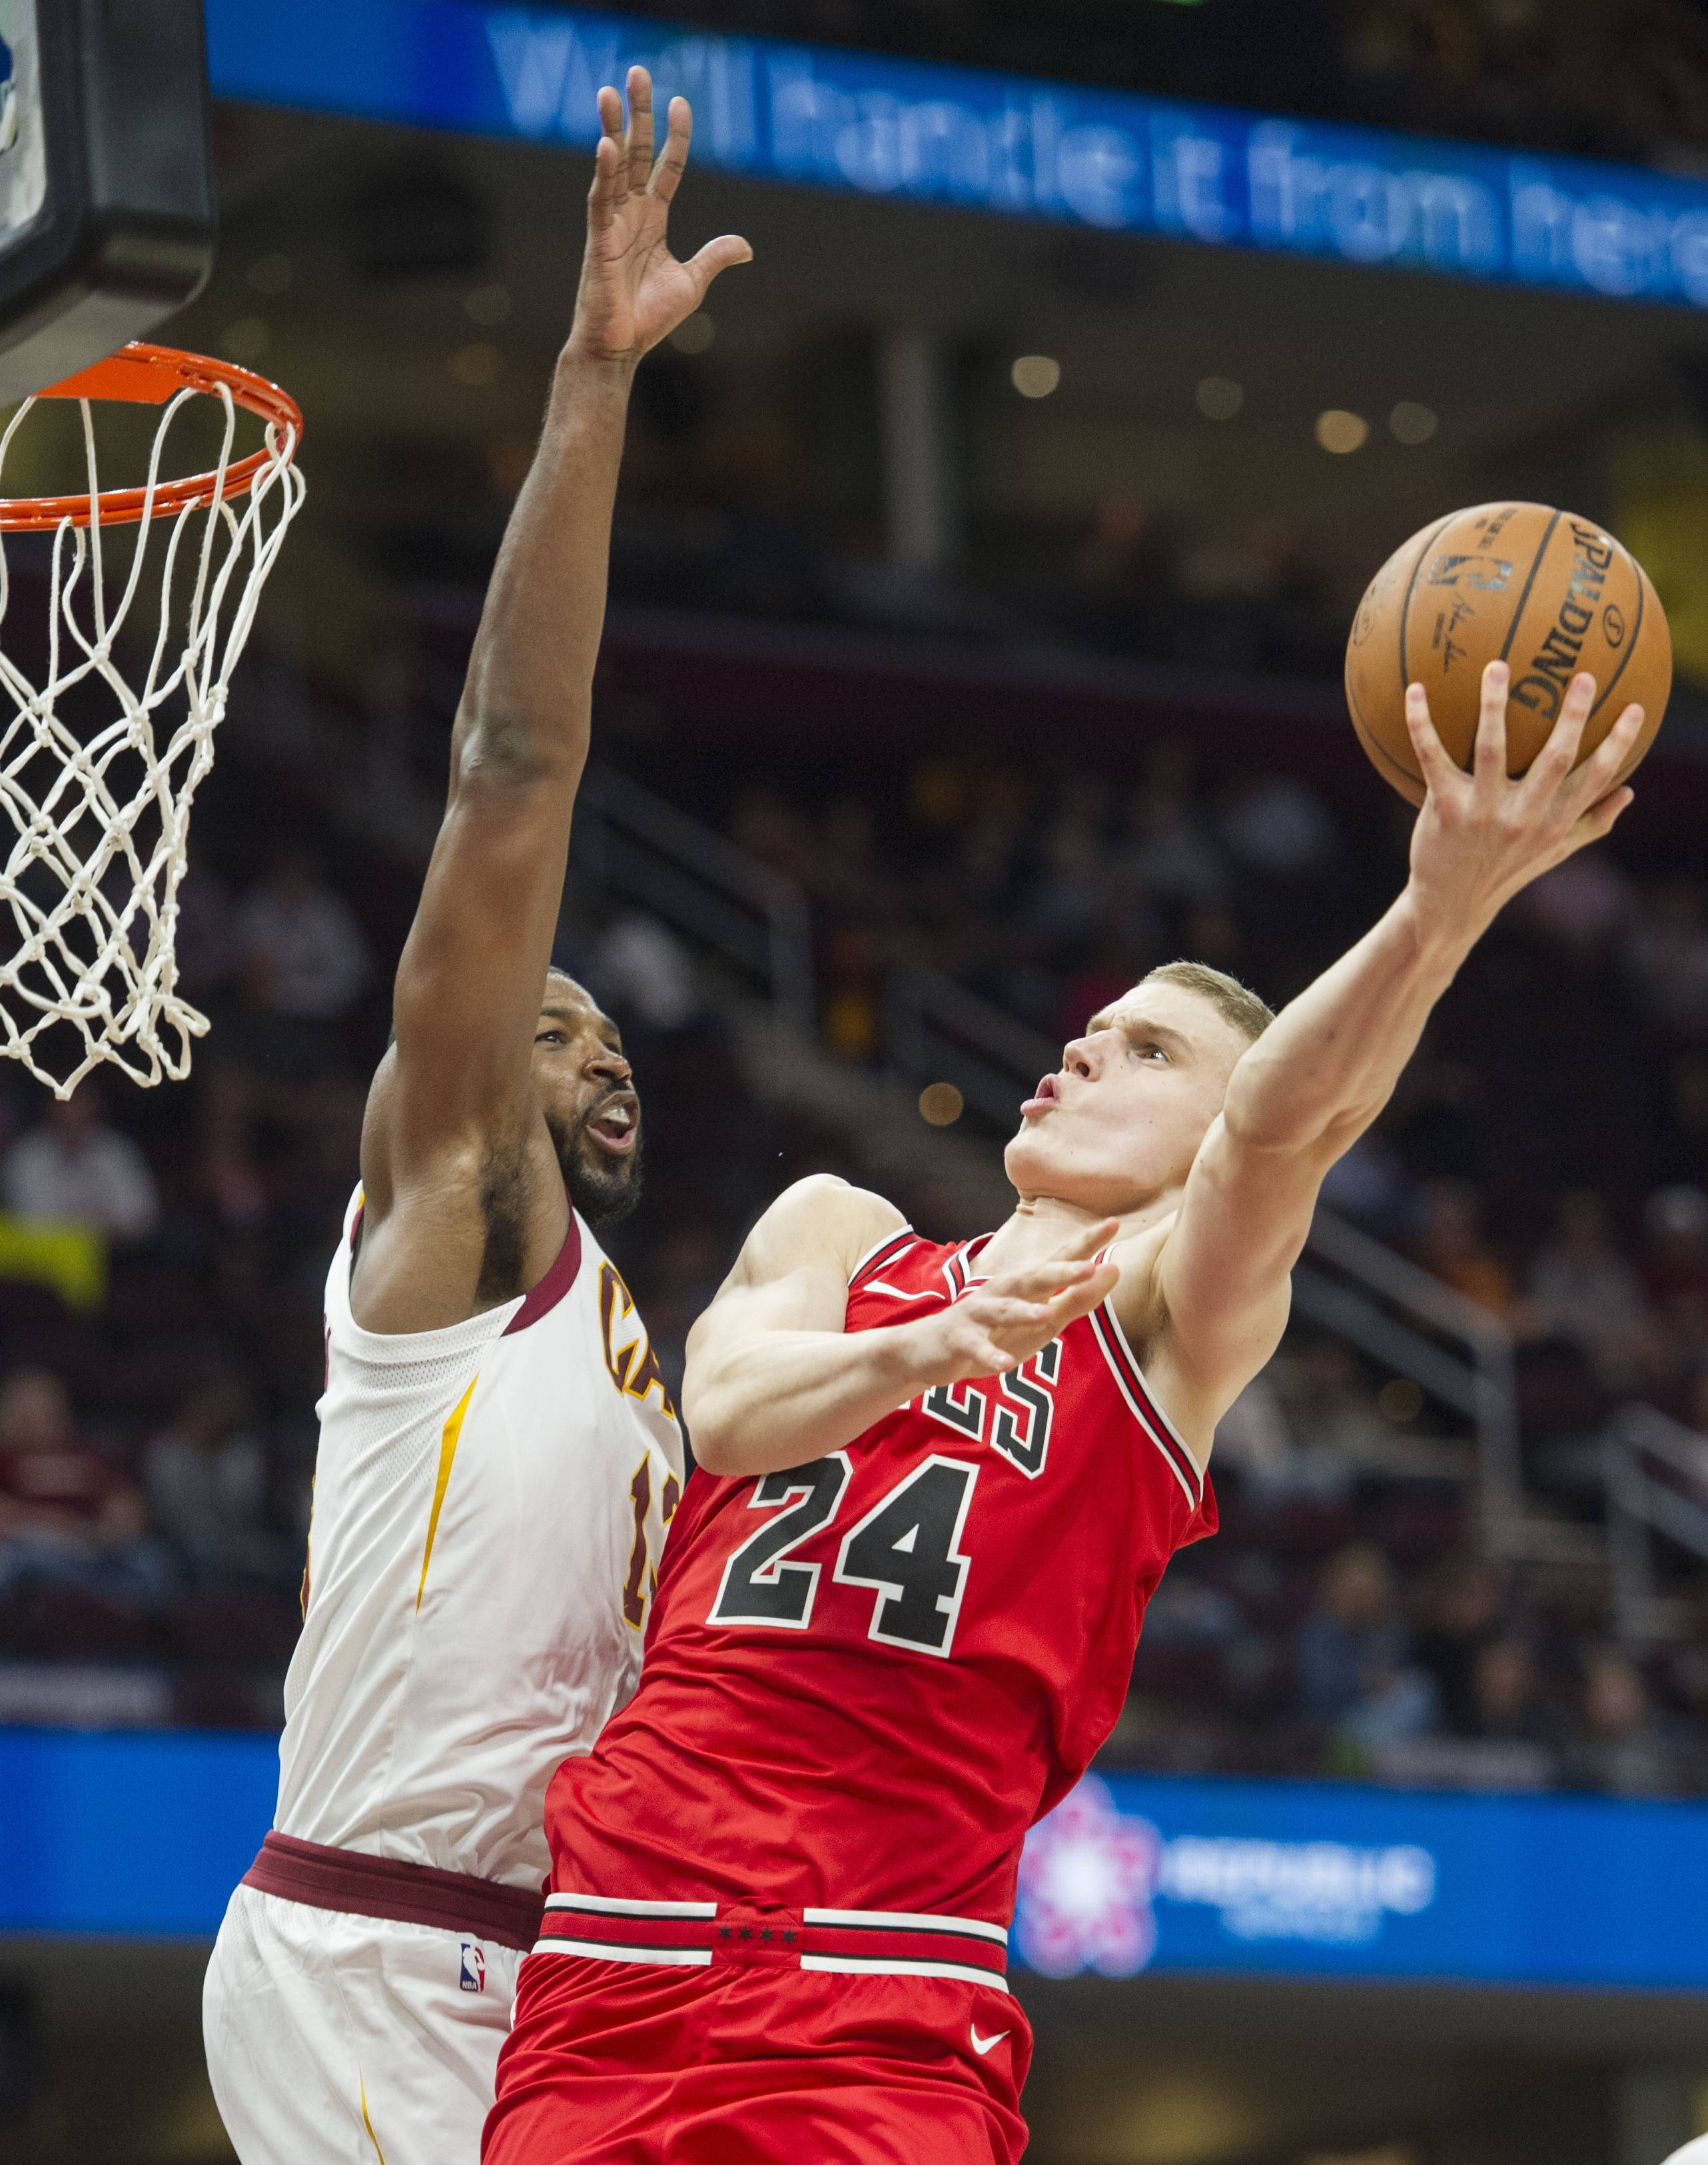 There were plenty of jokes made about Hoi-ball, the faster-paced, higher-scoring offense Chicago Bulls coach Fred Hoiberg has struggled to implement for two years. It has been on full display during this preseason. One promising sign in the Cleveland game is this style seems to fit 7-foot rookie Lauri Markkanen. In his second preseason appearance, Markkanen found his shooting touch and scored 15 of his 18 points in the fourth quarter.